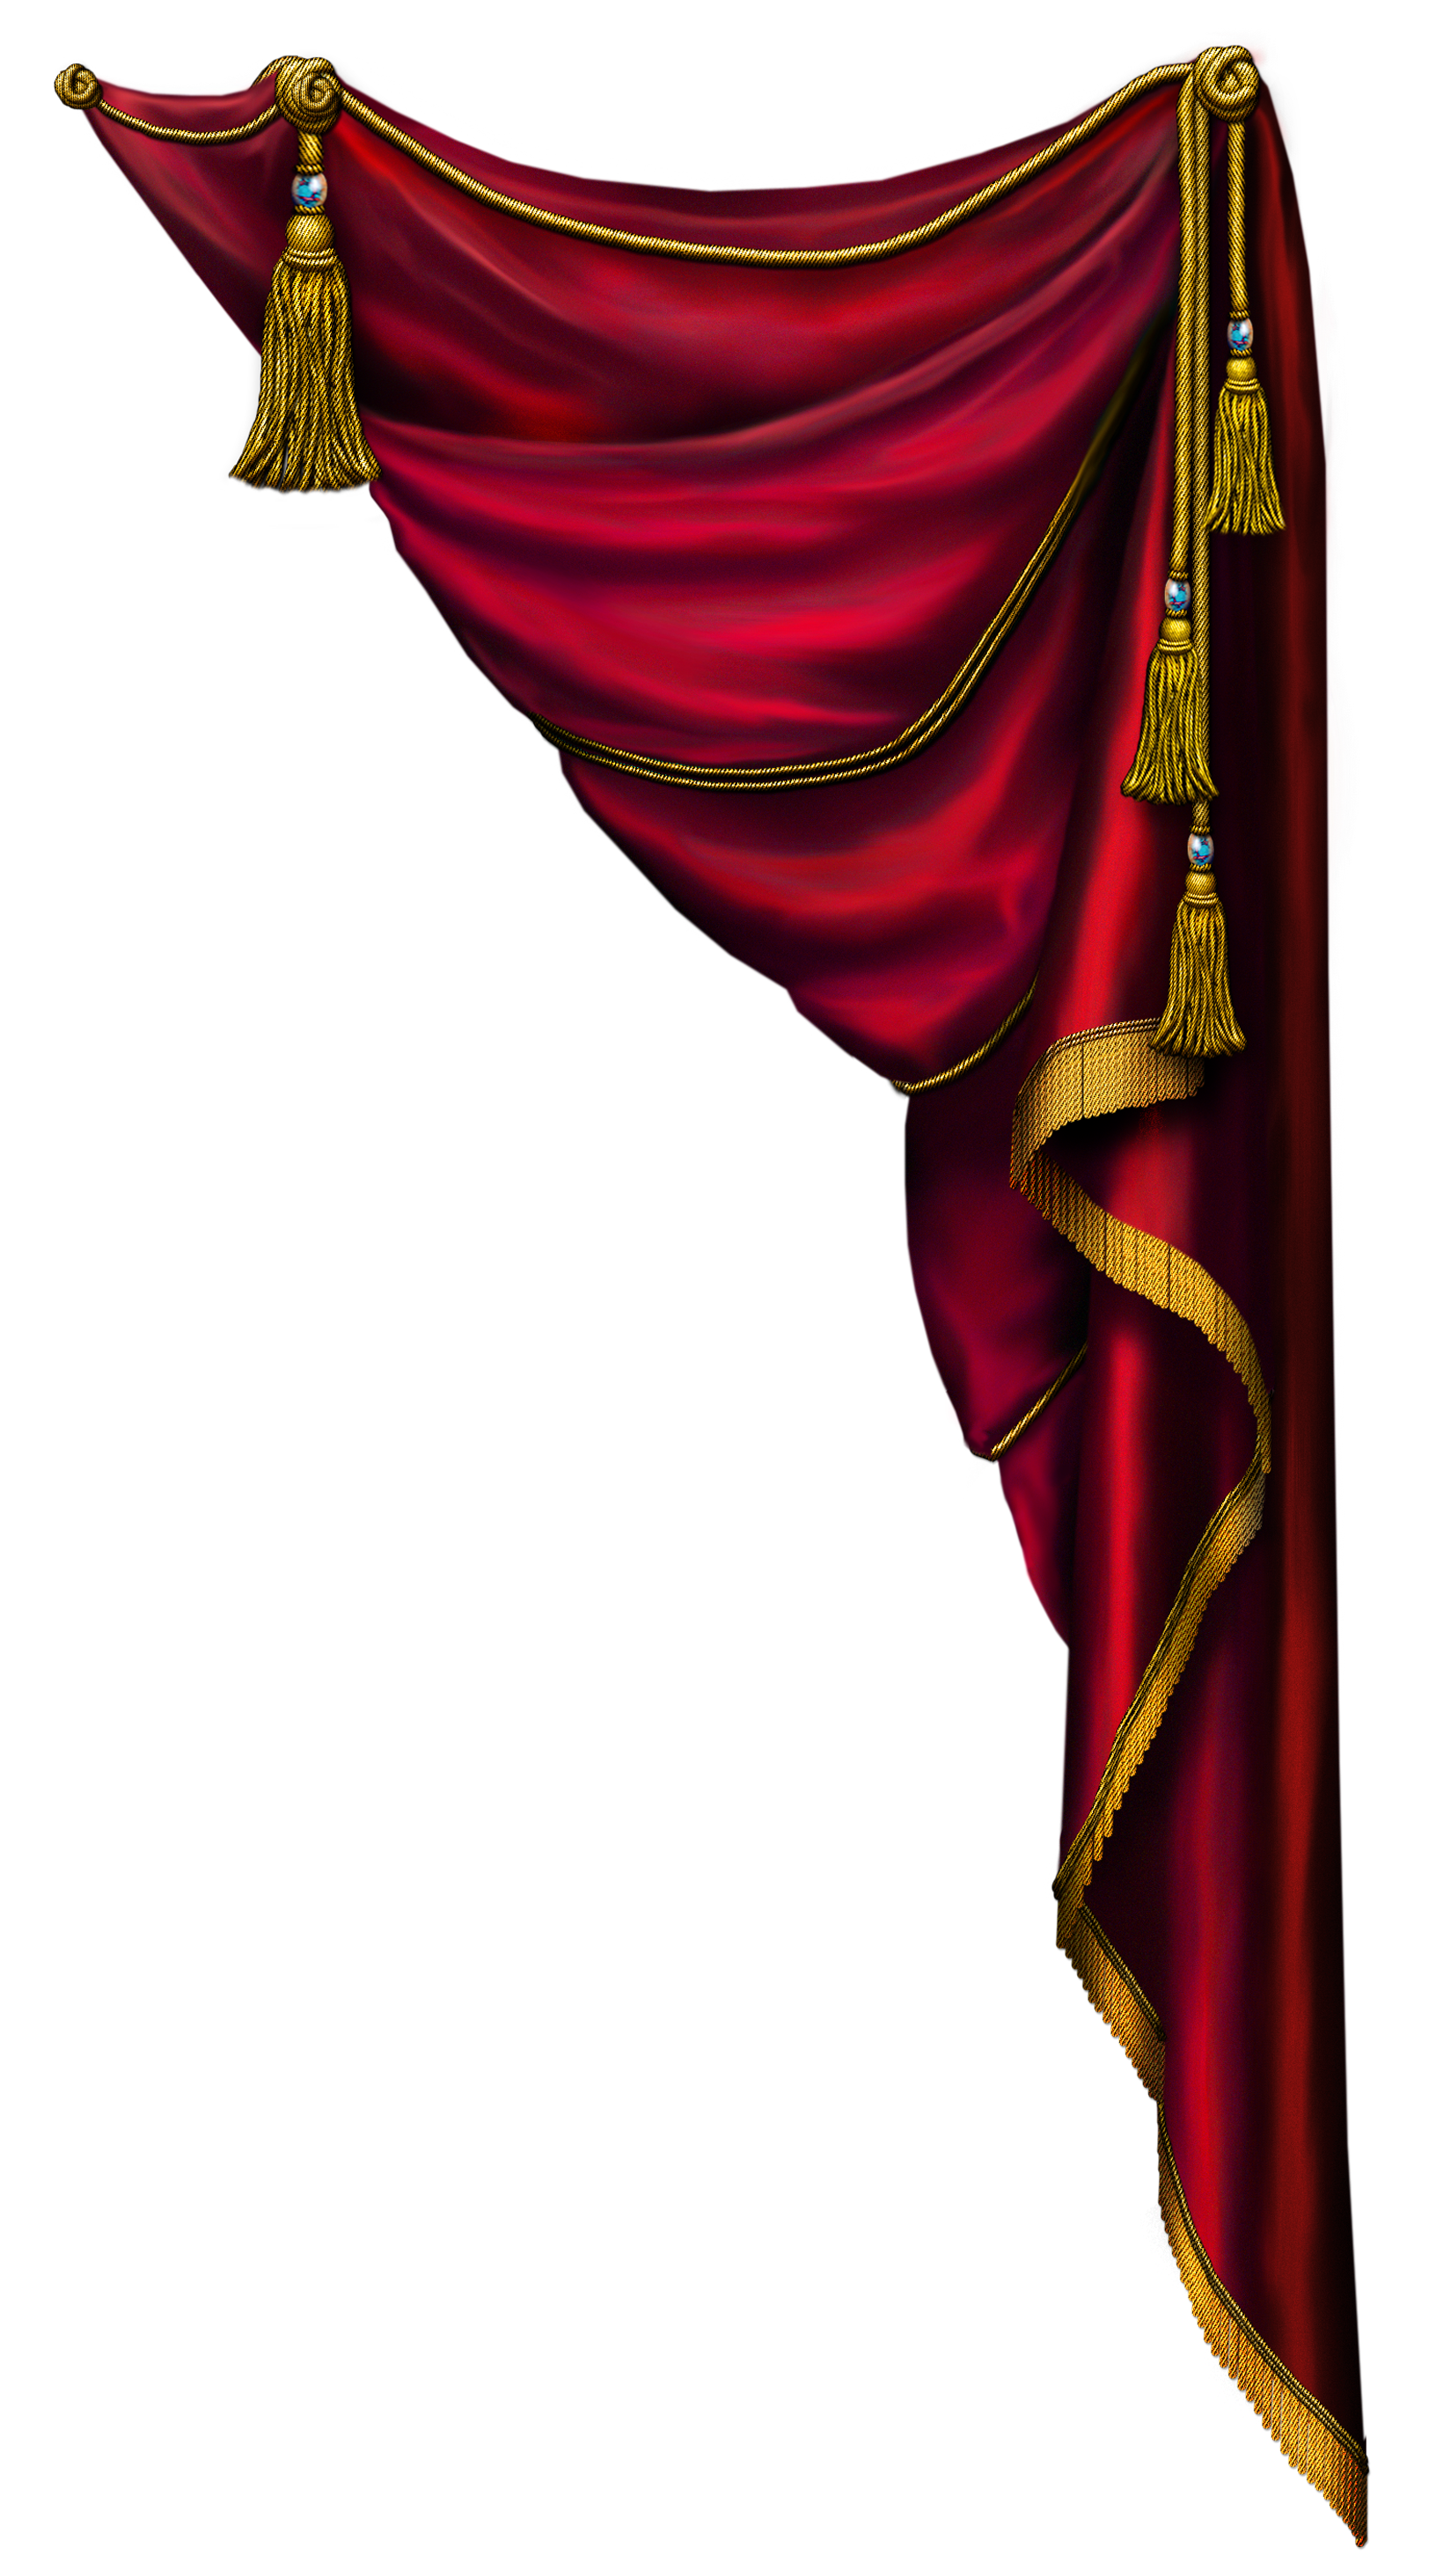 Gold curtains png. Transparent red curtain clipart